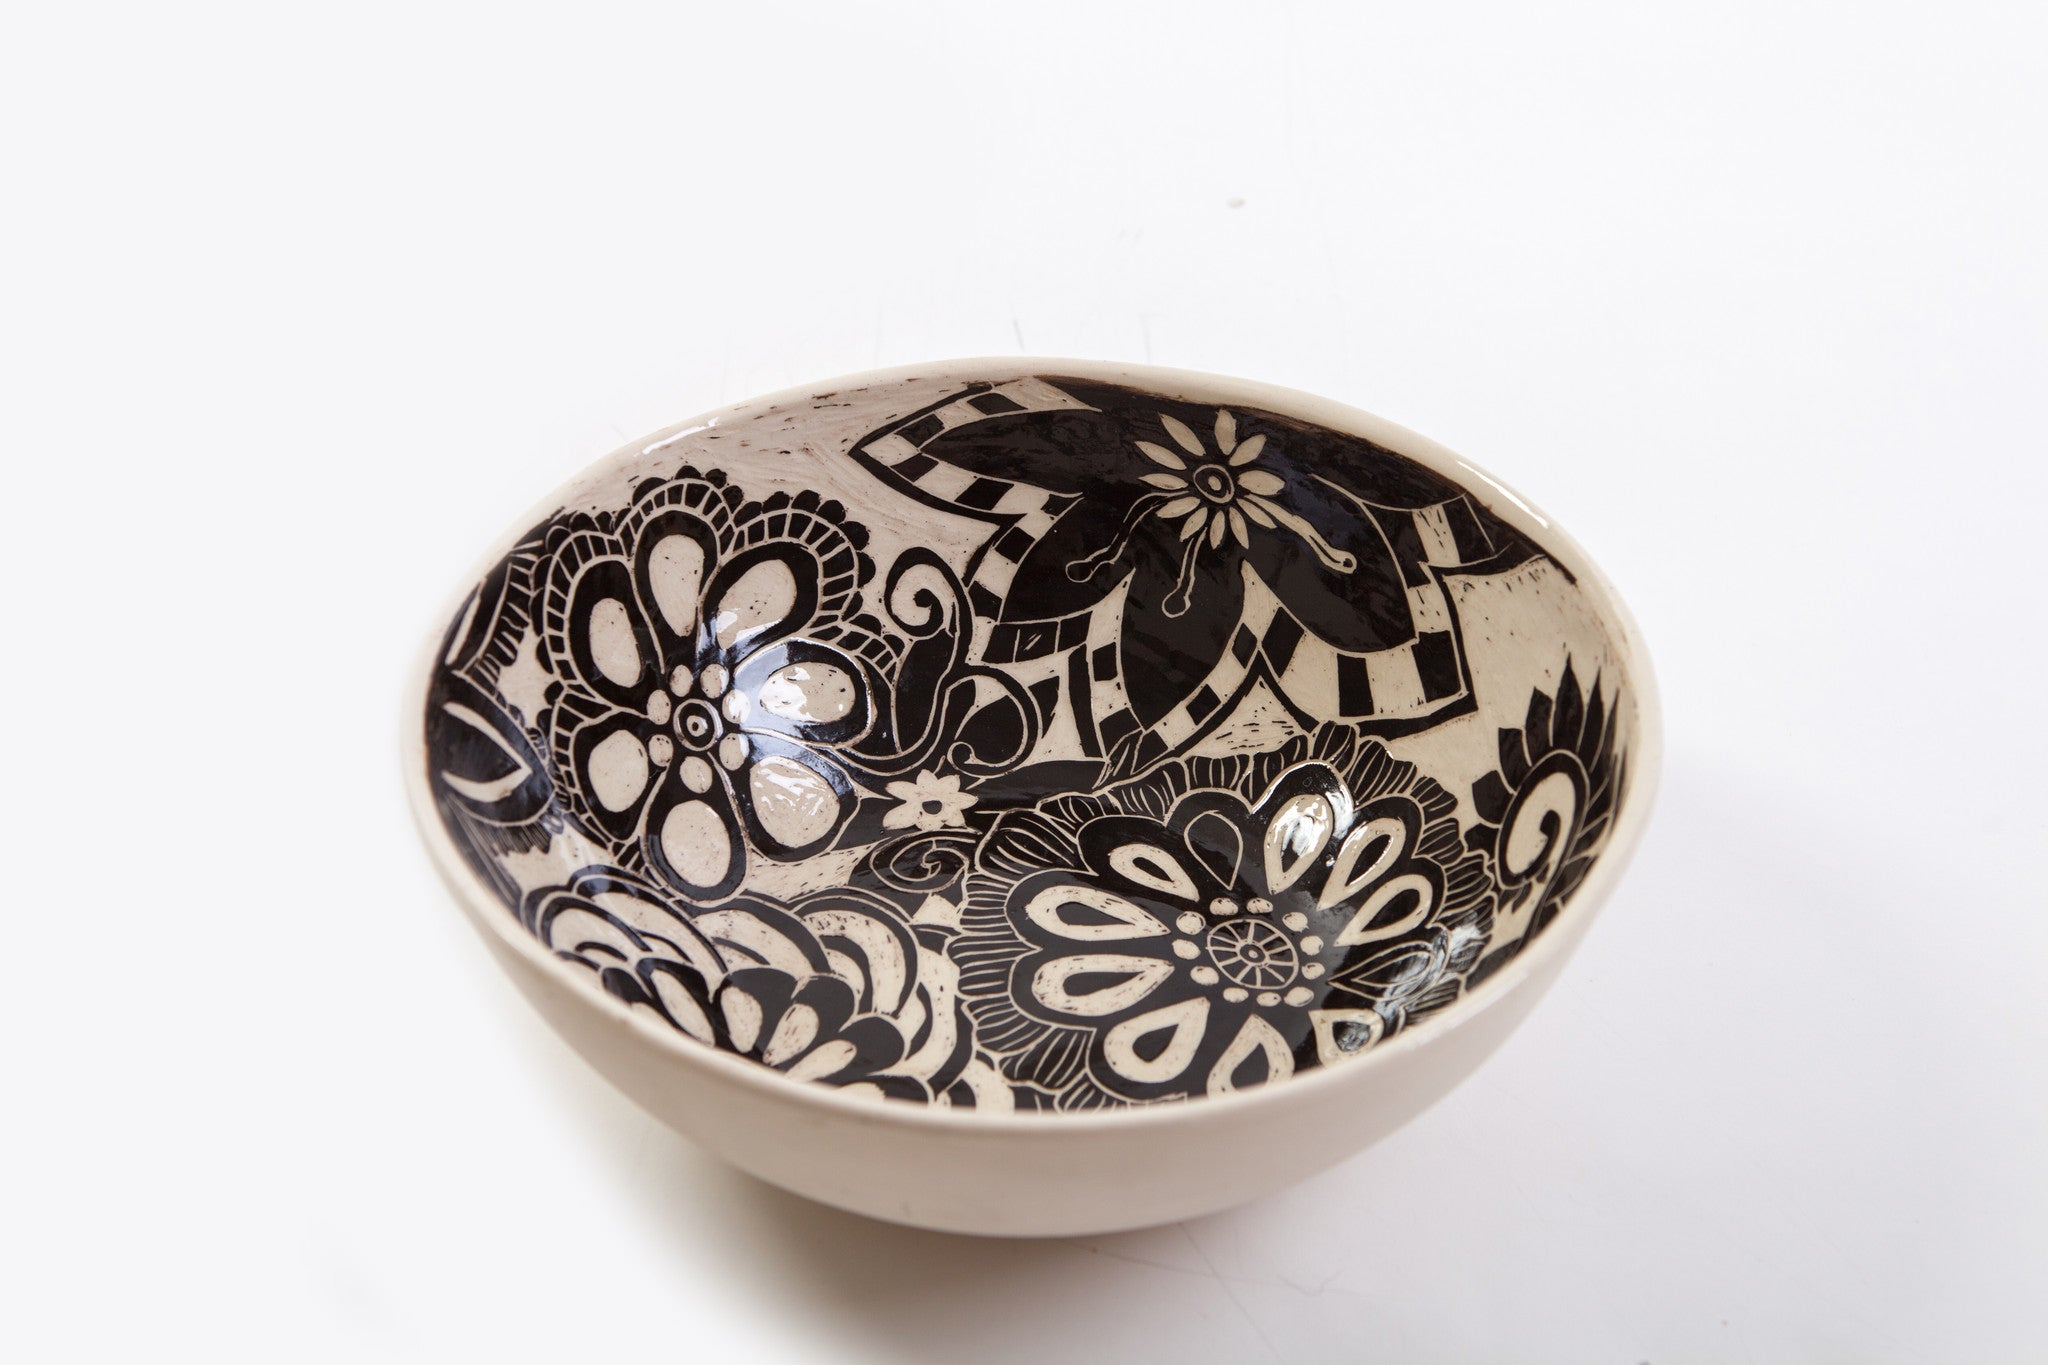 Glazed Black And White Sgraffito Ceramic Bowl With Flower Motif Objects Of Desire Artful Living